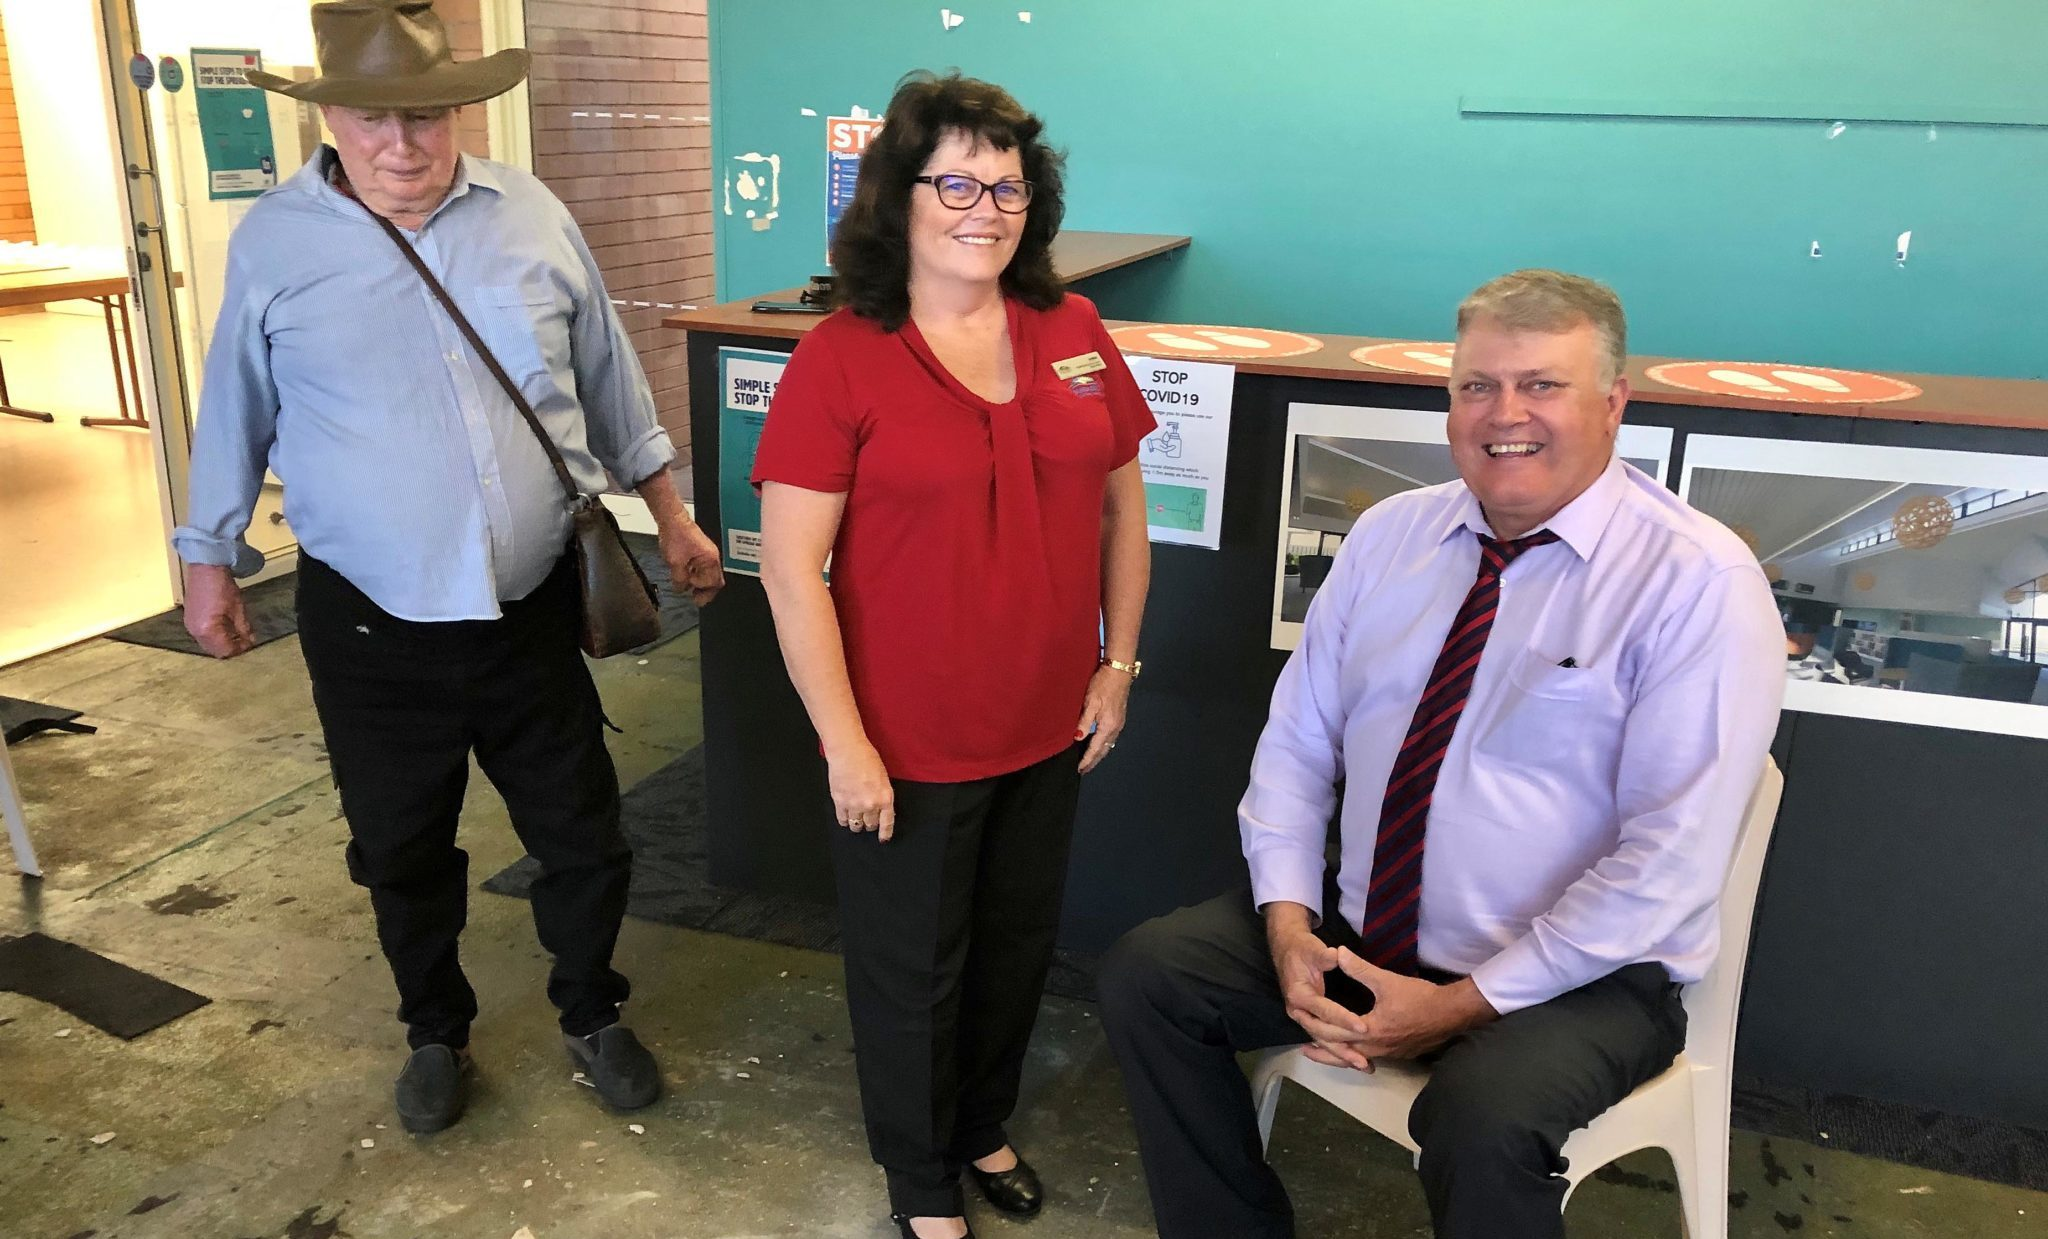 Retrieving the Kolan Centenary Time Capsule from the floor of the former Gin Gin Neighbourhood Centre brought back memories for (from left) Herb Aulfrey, Amber Larsen and Cr Wayne Honor. The capsule will be secured for a further 59 years.